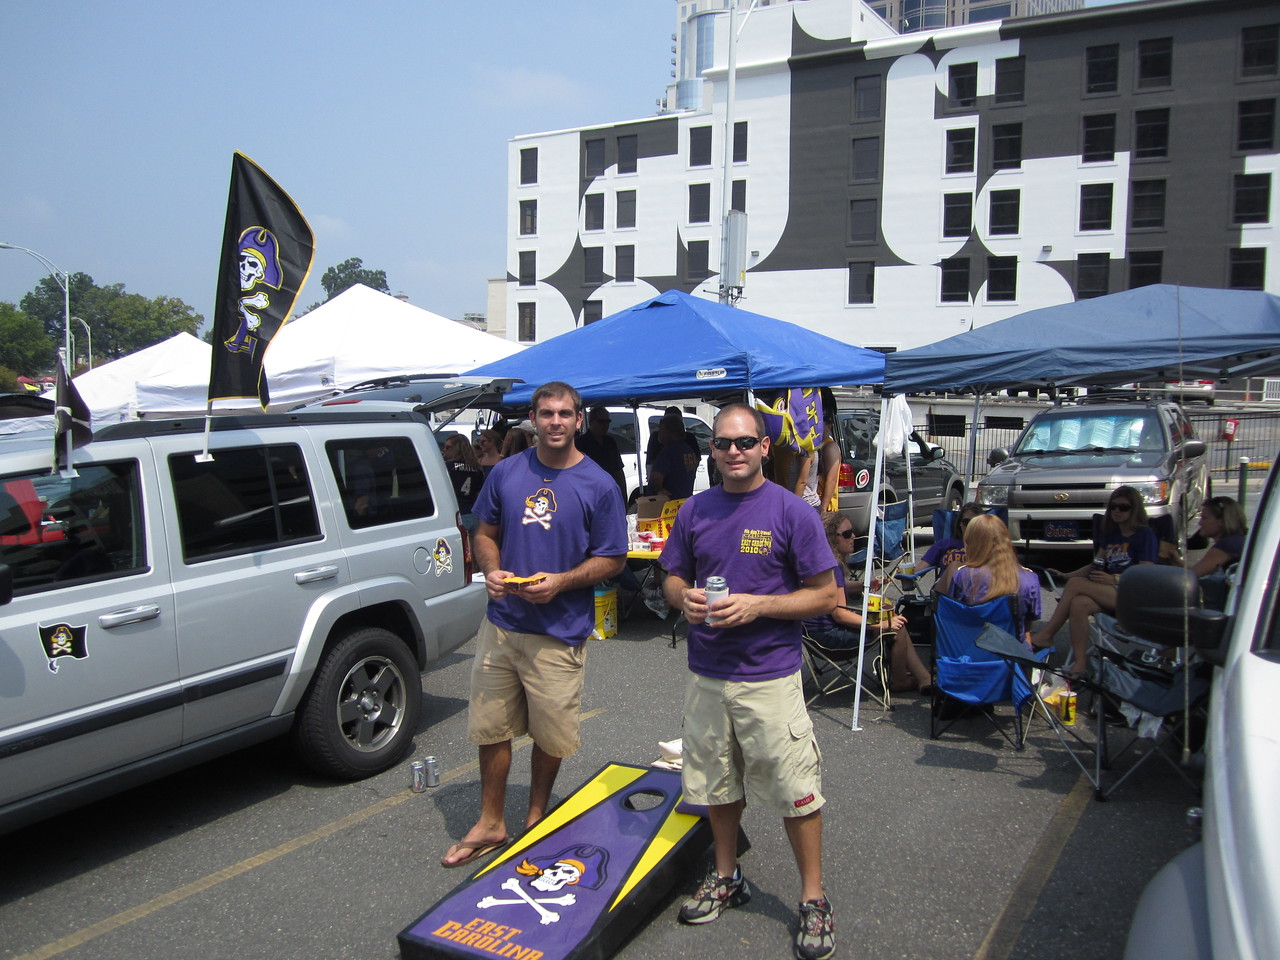 9/3/2011 ECU vs South Carolina  Tom, Jon